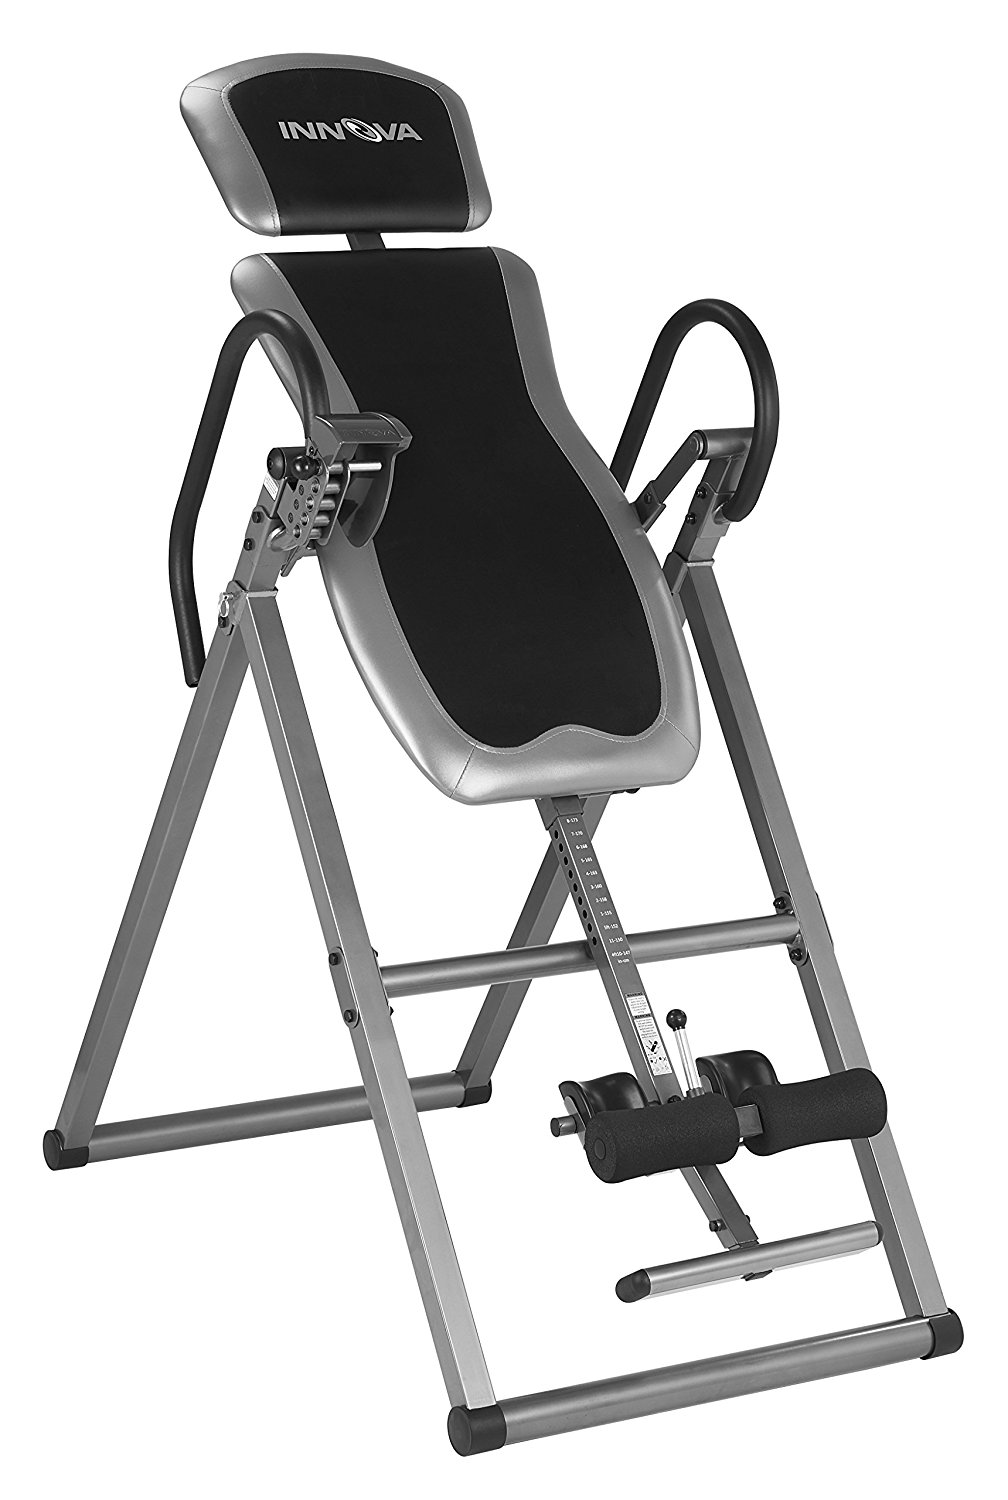 Innova ITX9600/IT9600 Heavy Duty Inversion Table